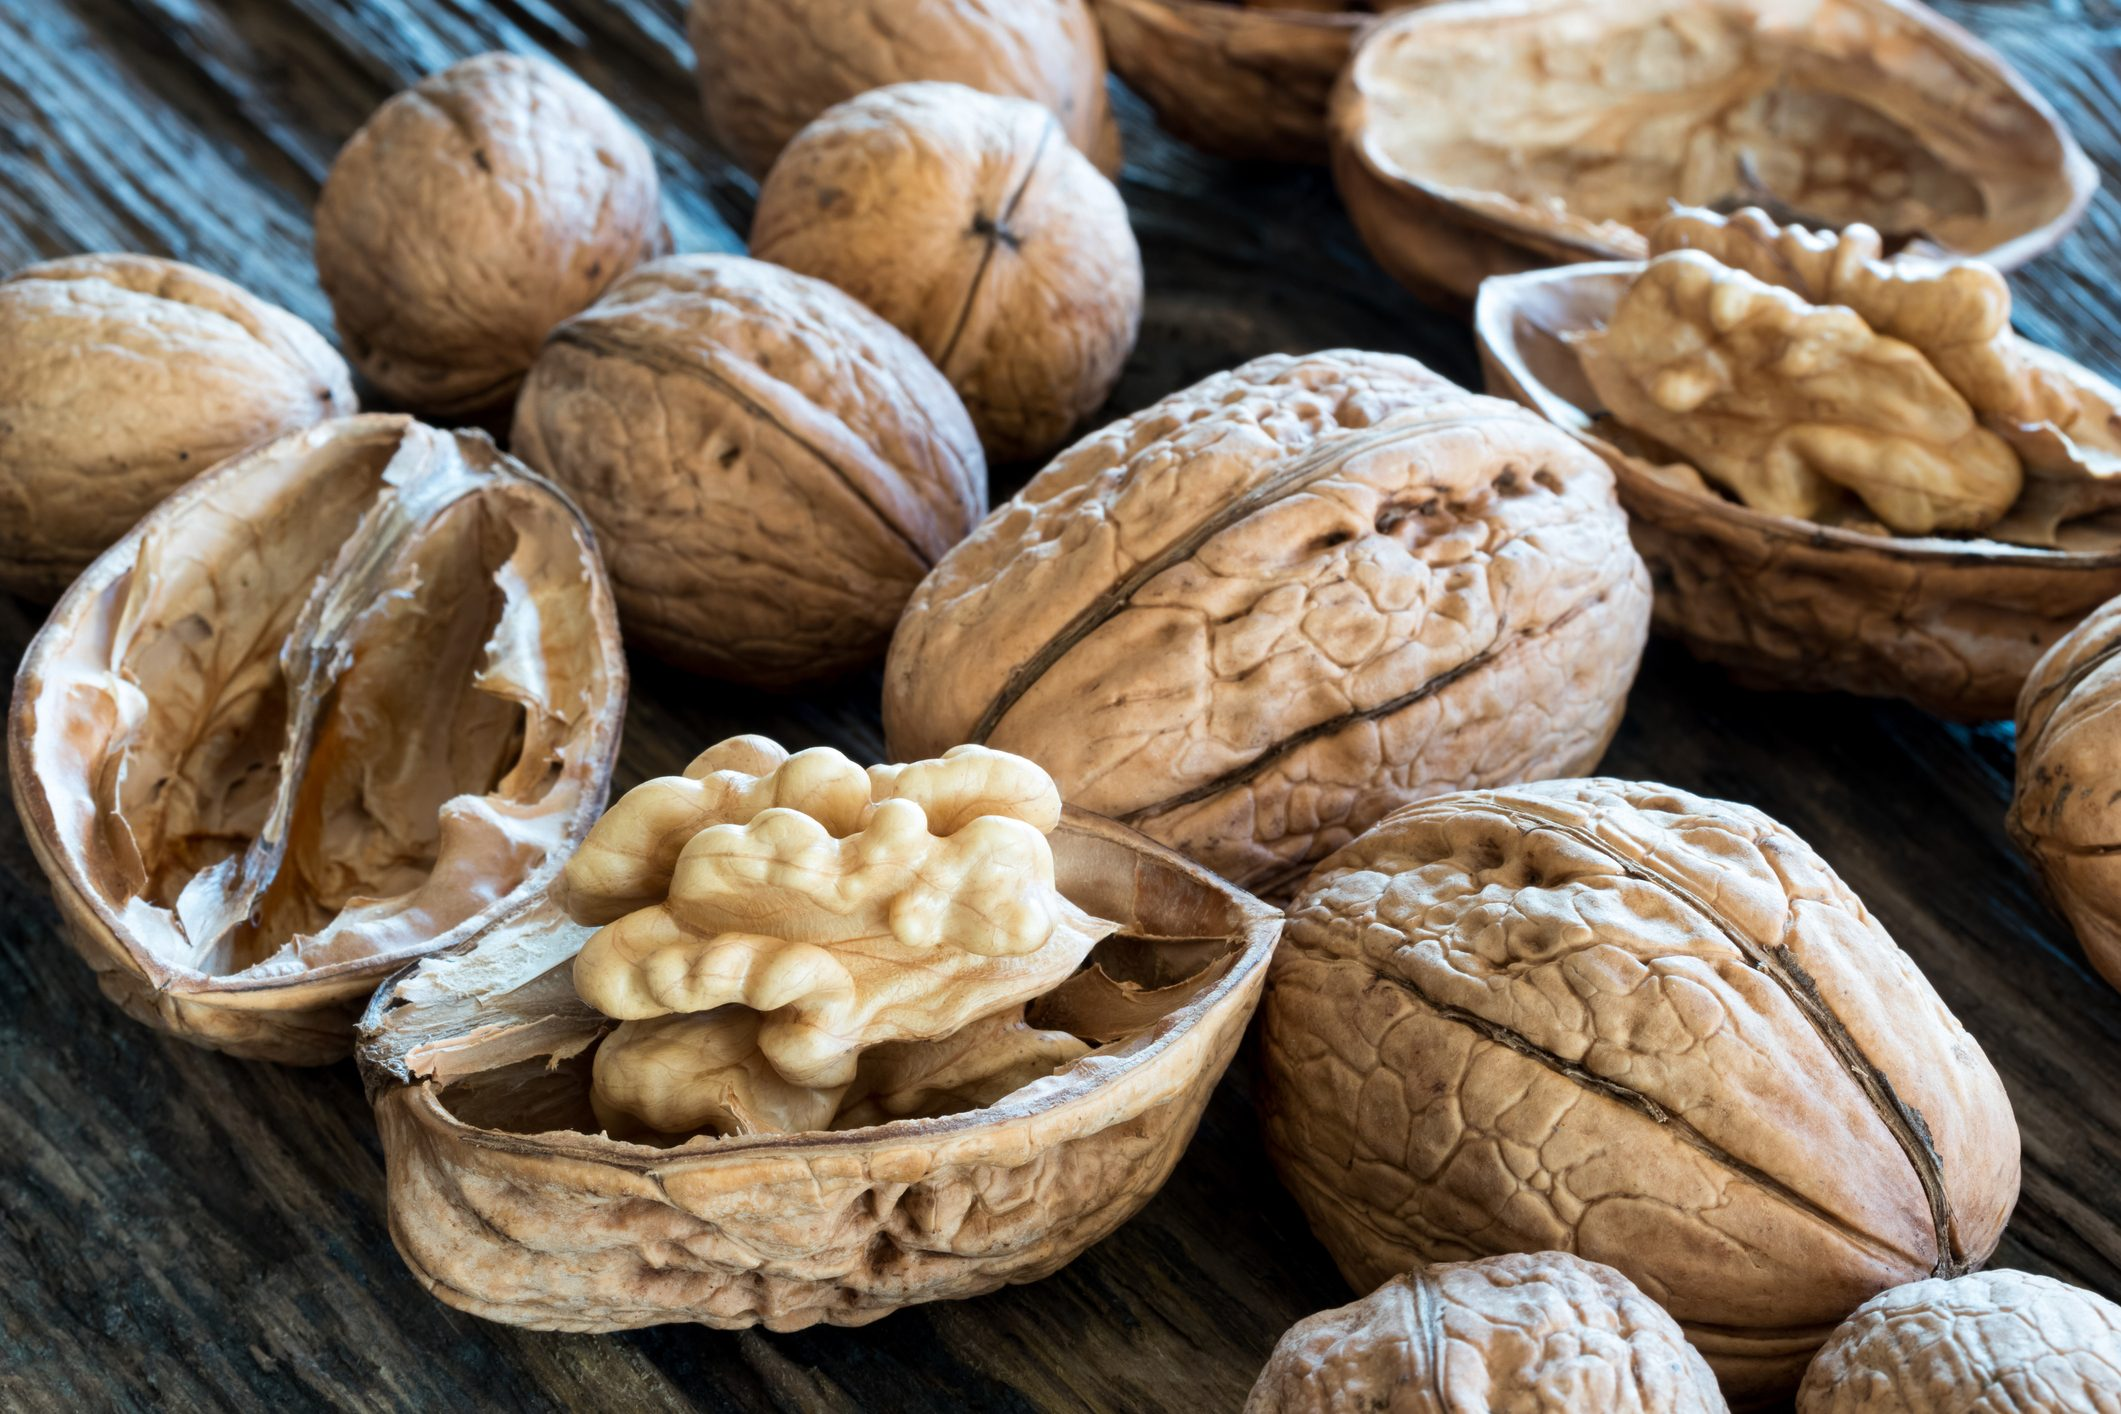 10 serious side effects of consuming walnuts | Cookist.com